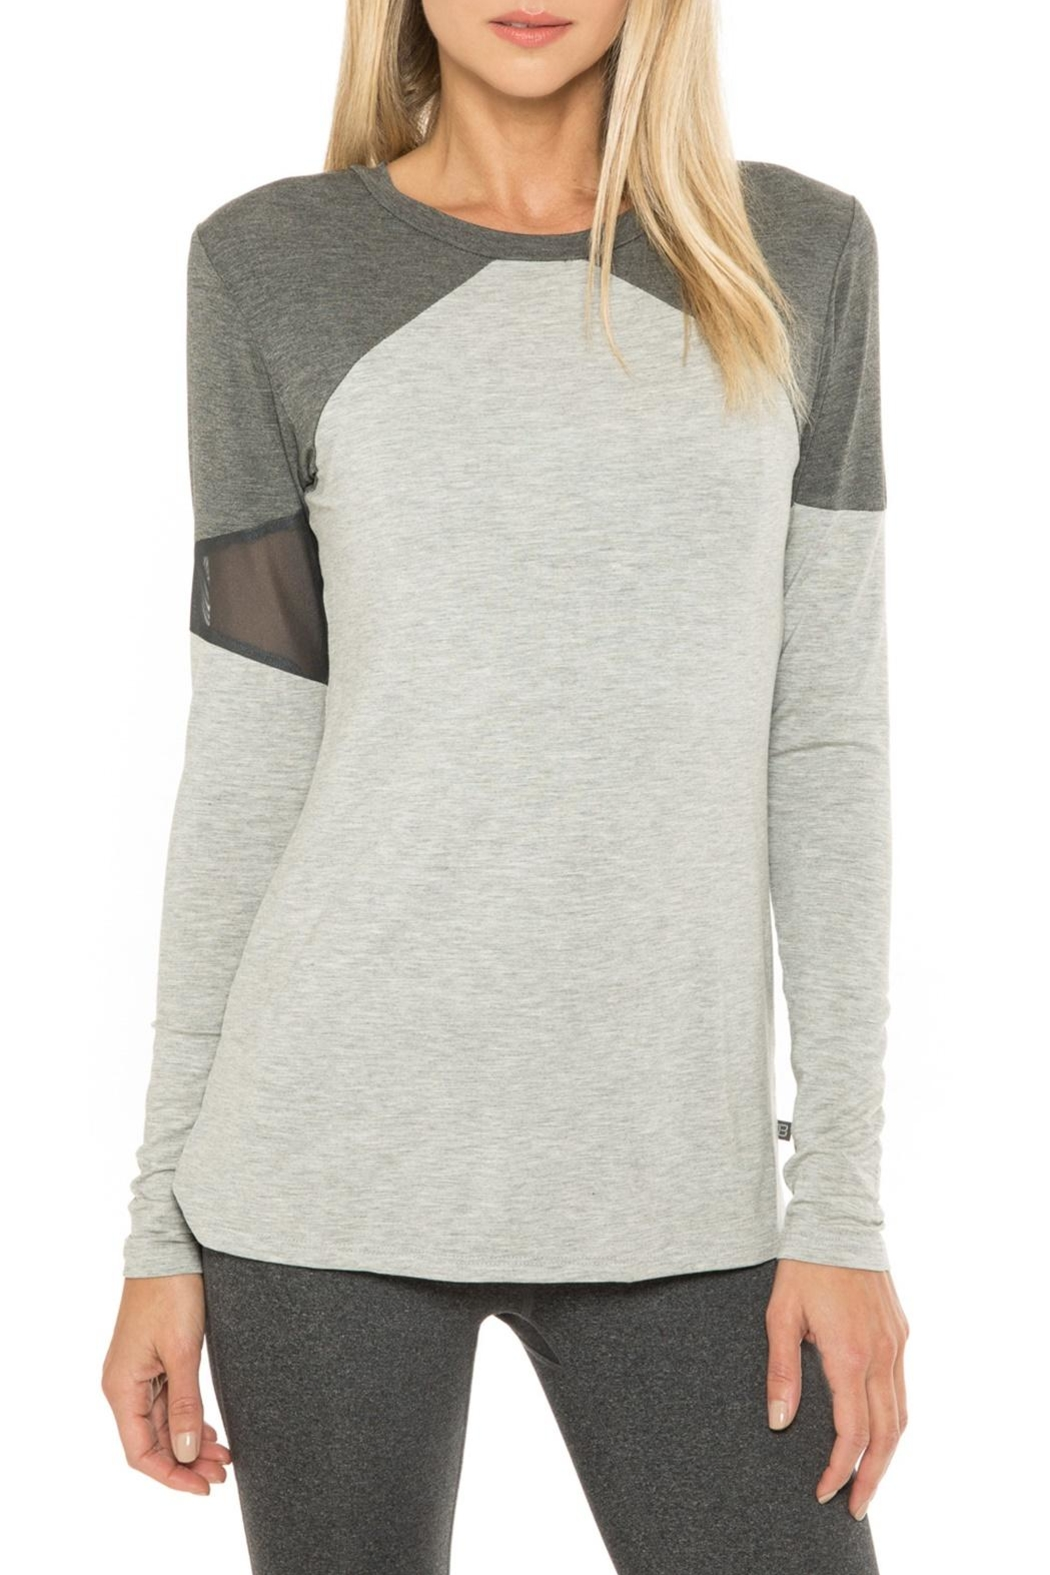 Body Language Aven Pullover Top - Main Image